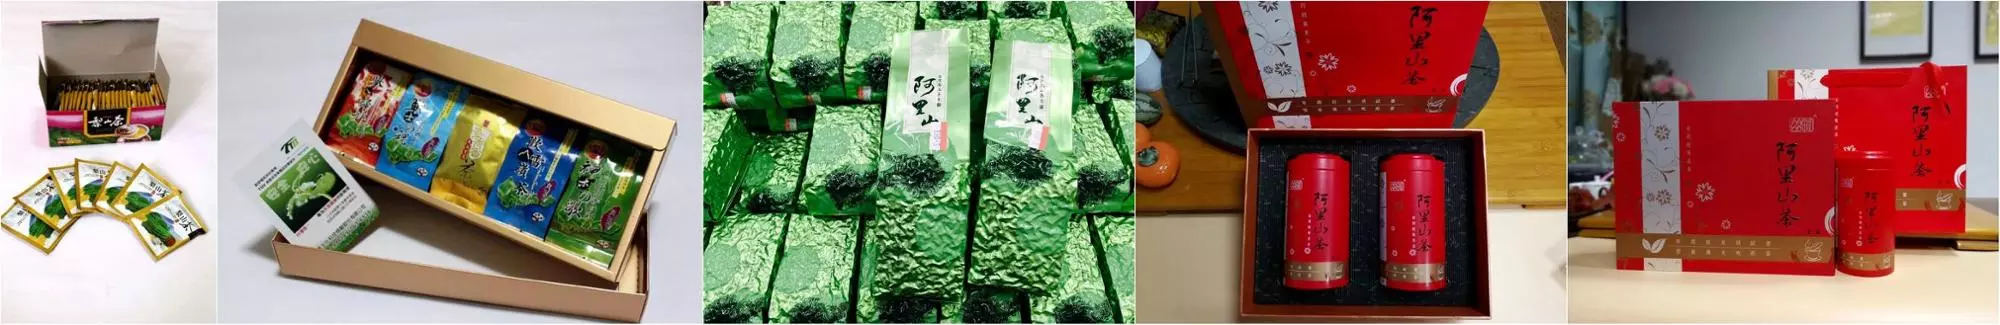 Taiwan Premium Dong Ding Oolong Tea Leaves, any Packaging, best gift for New Year 2019